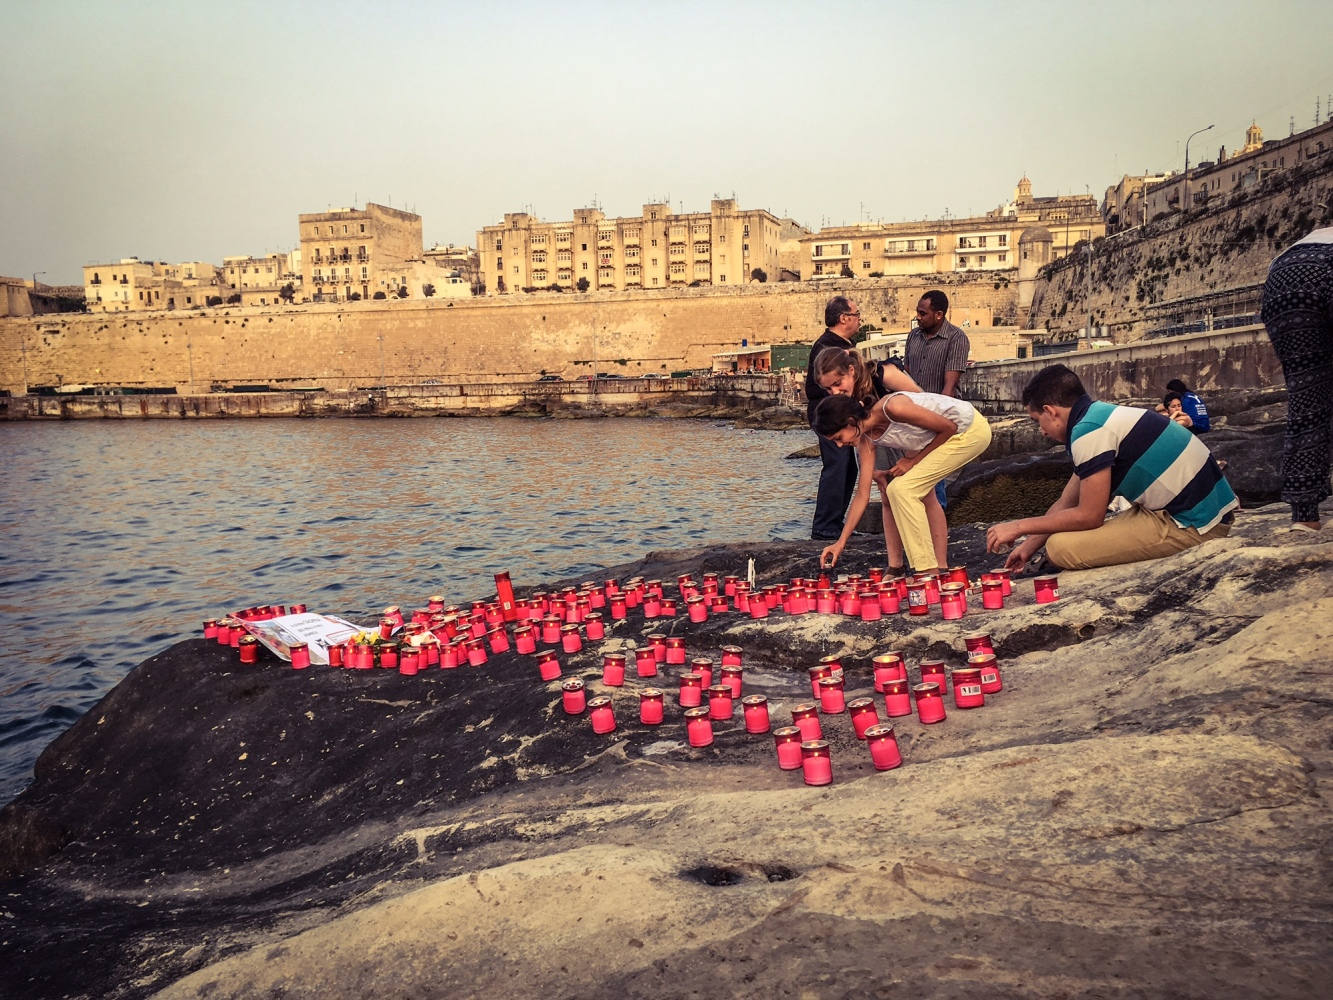 Ports of Hope, a candlelit vigil to honor the lives lost at sea and the need for solidarity, Valletta, Malta, 5th July 2018 ©Helen Jones-Florio